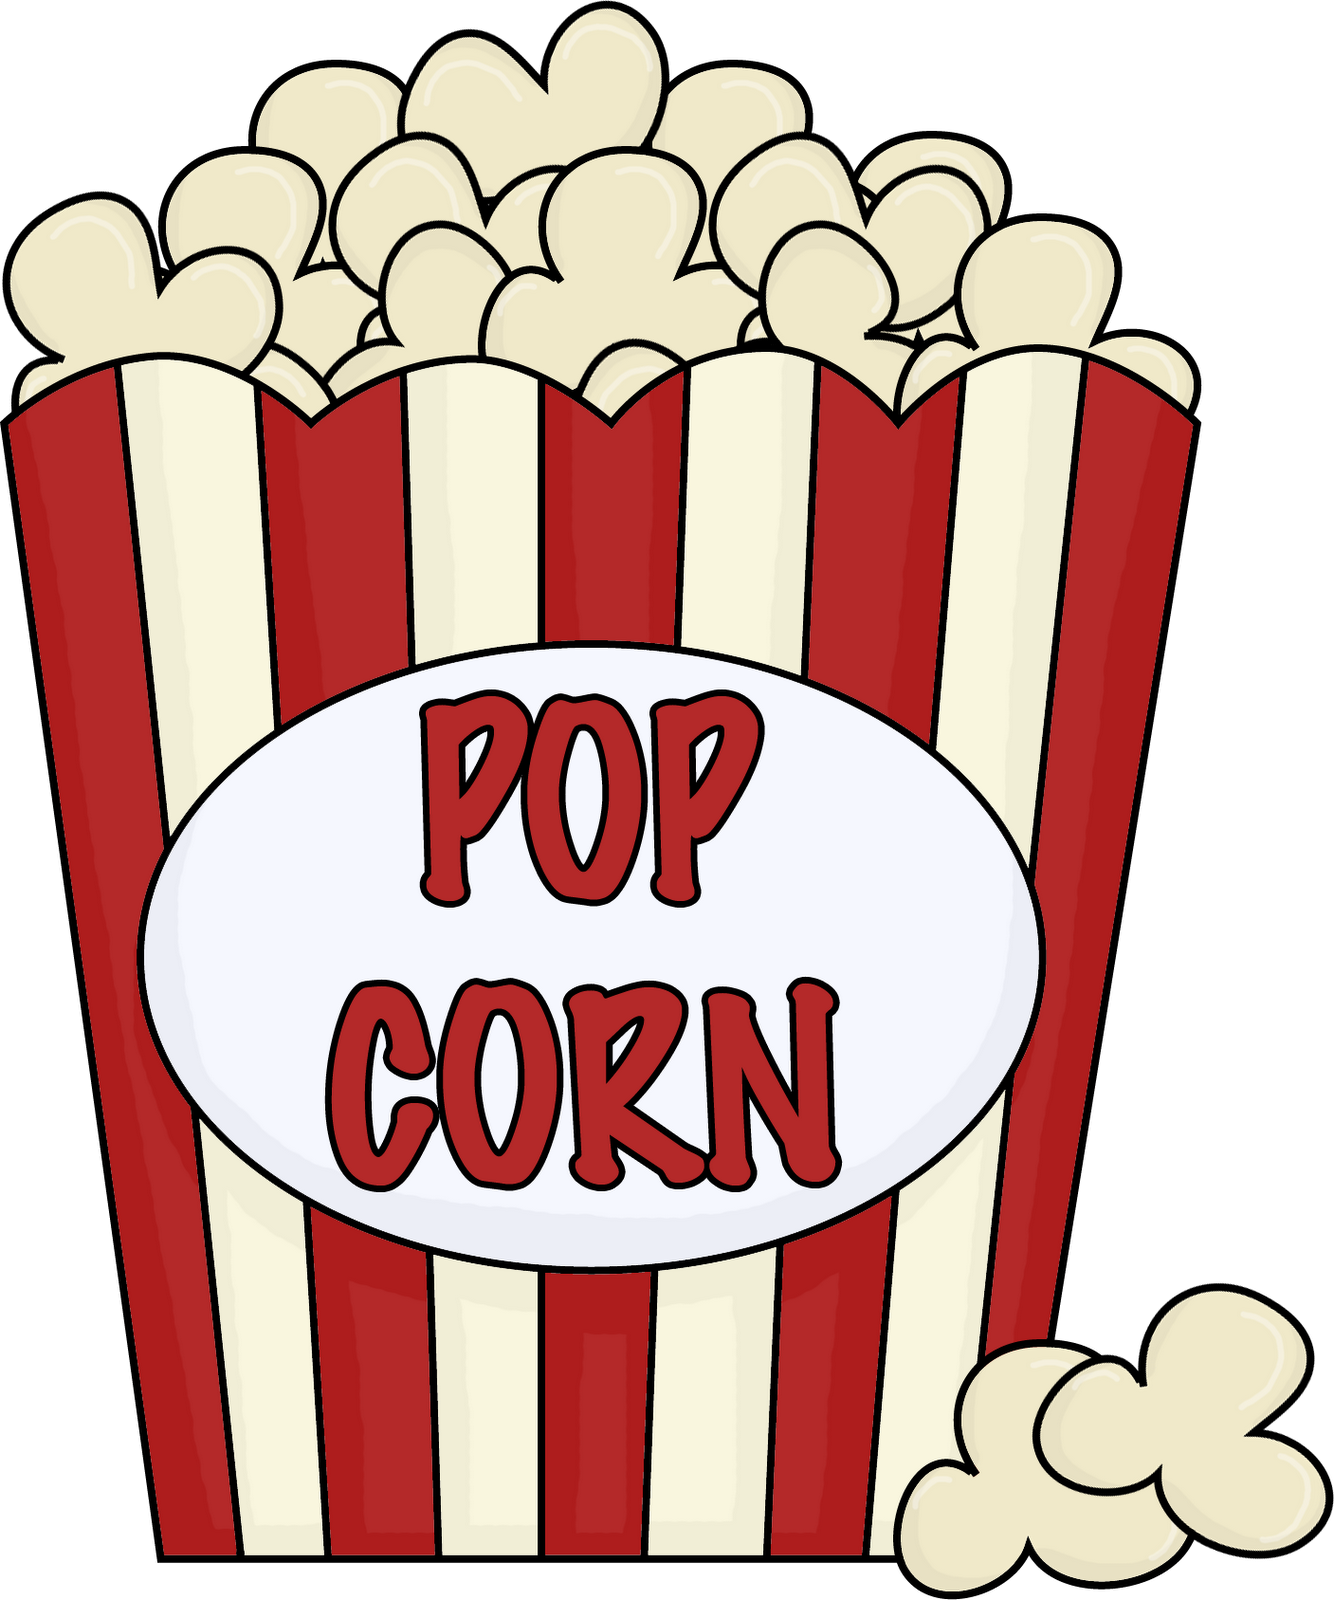 Popcorn Clip Art Black And White Outline-Popcorn clip art black and white outline free-12